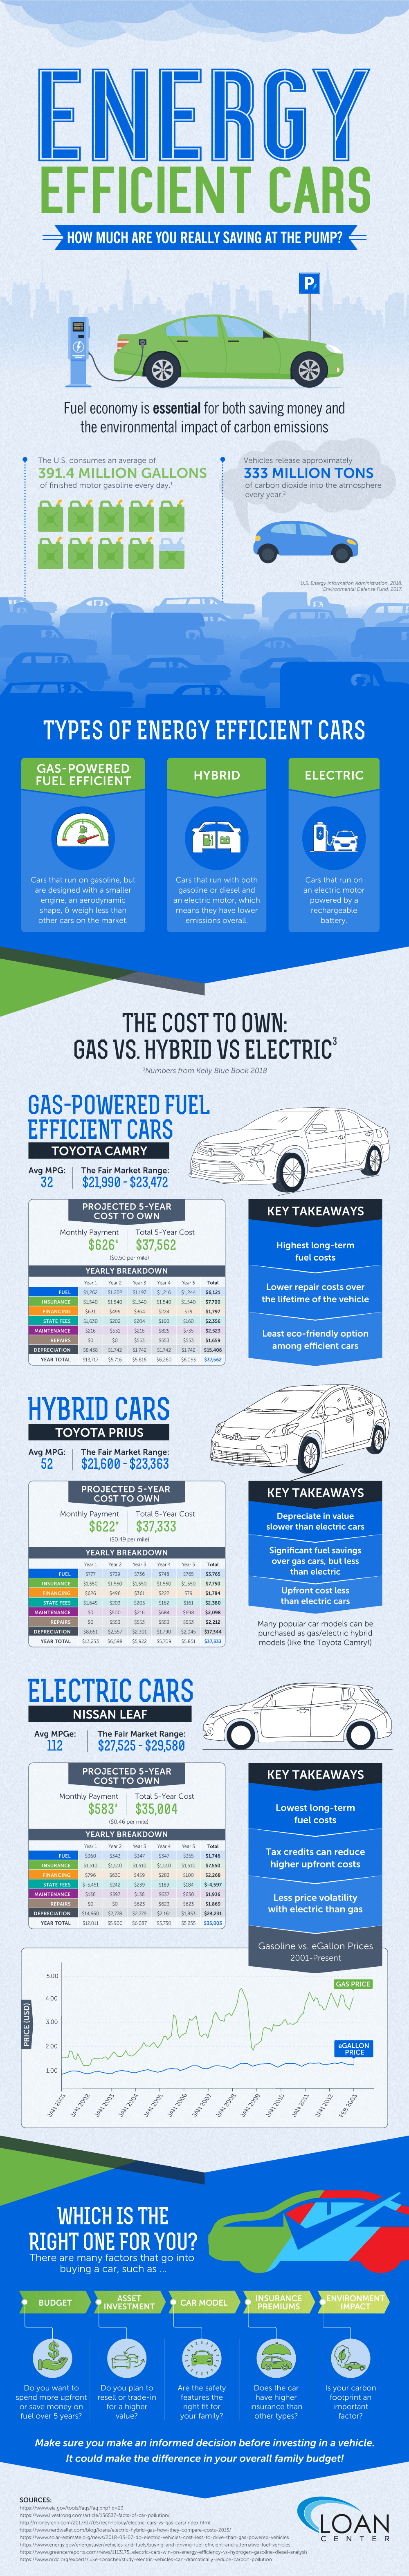 Energy Efficient Cars - How Much Are You Really Saving